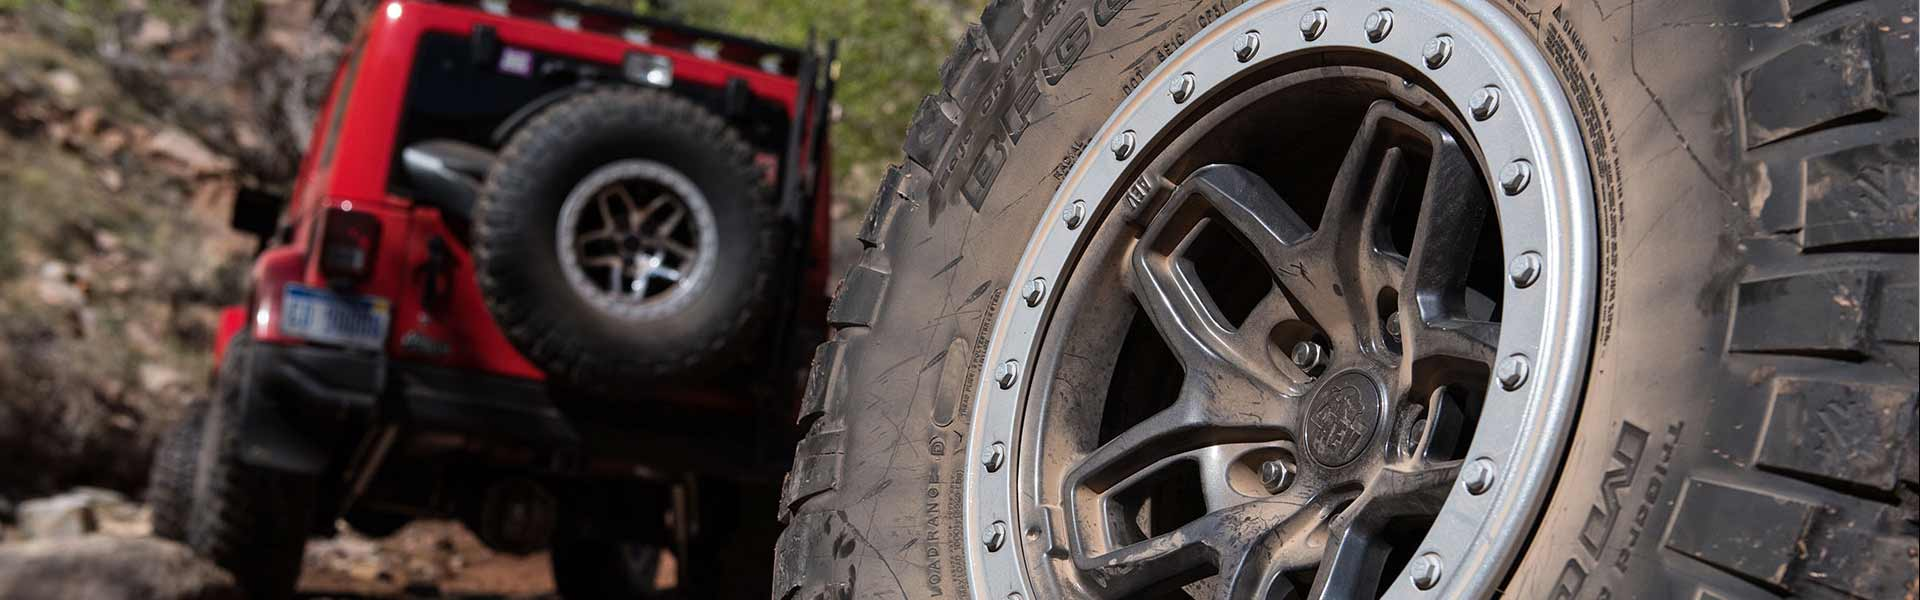 Murchison Products Wheels and Tyres